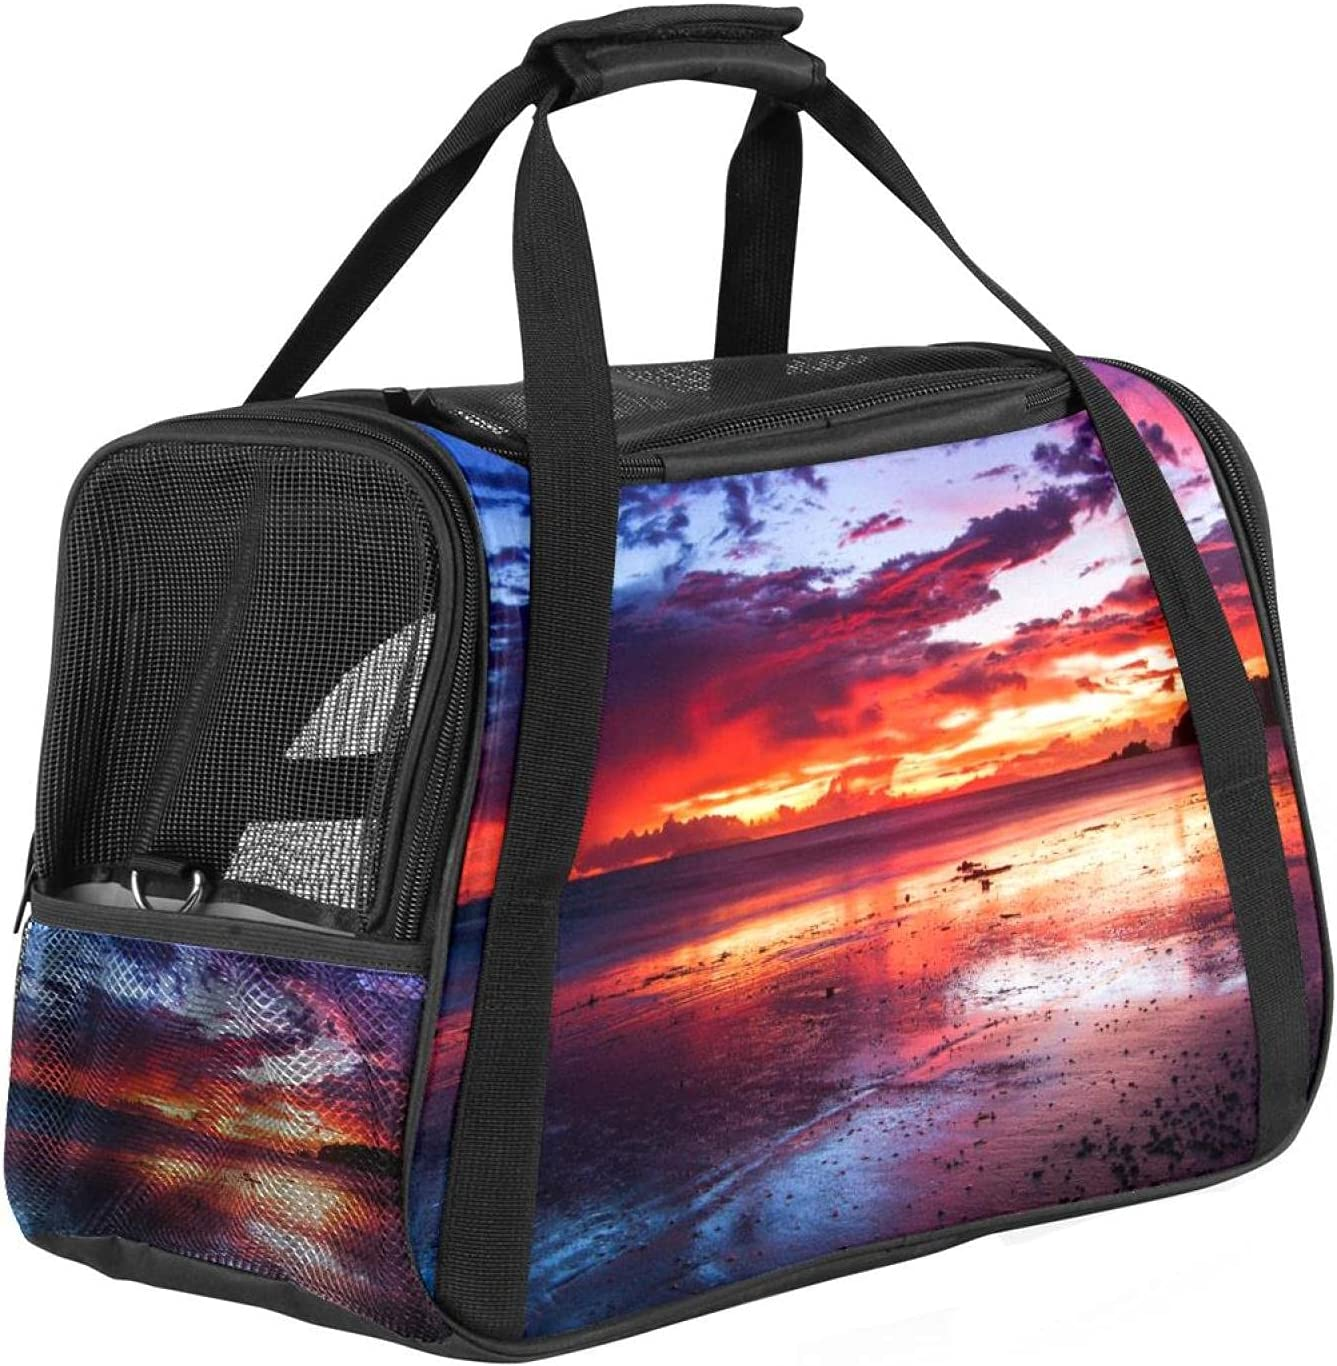 Pet Carrier for Dog and Manufacturer regenerated product Tra Soft-Sided Airline Cats Approved Al sold out.